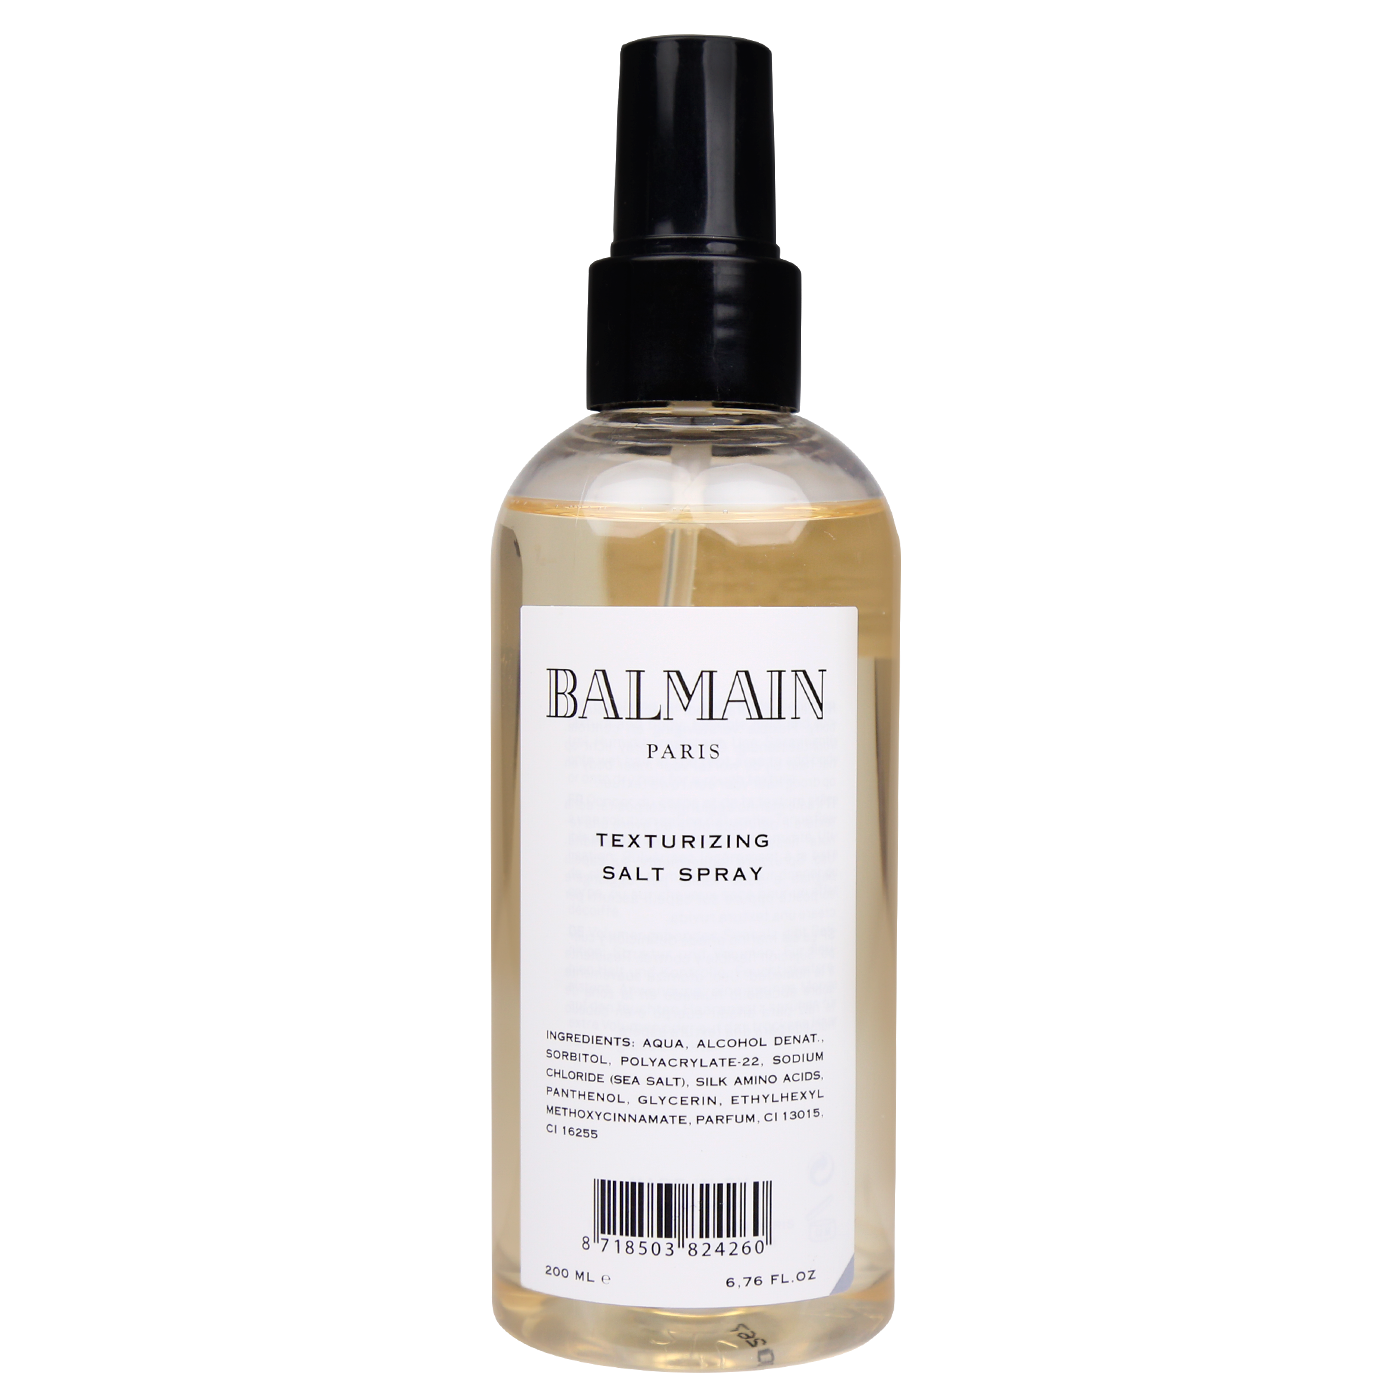 Balmain Texturizing Salt Spray 200 ml | Spray Texturizante con Sal de Mar